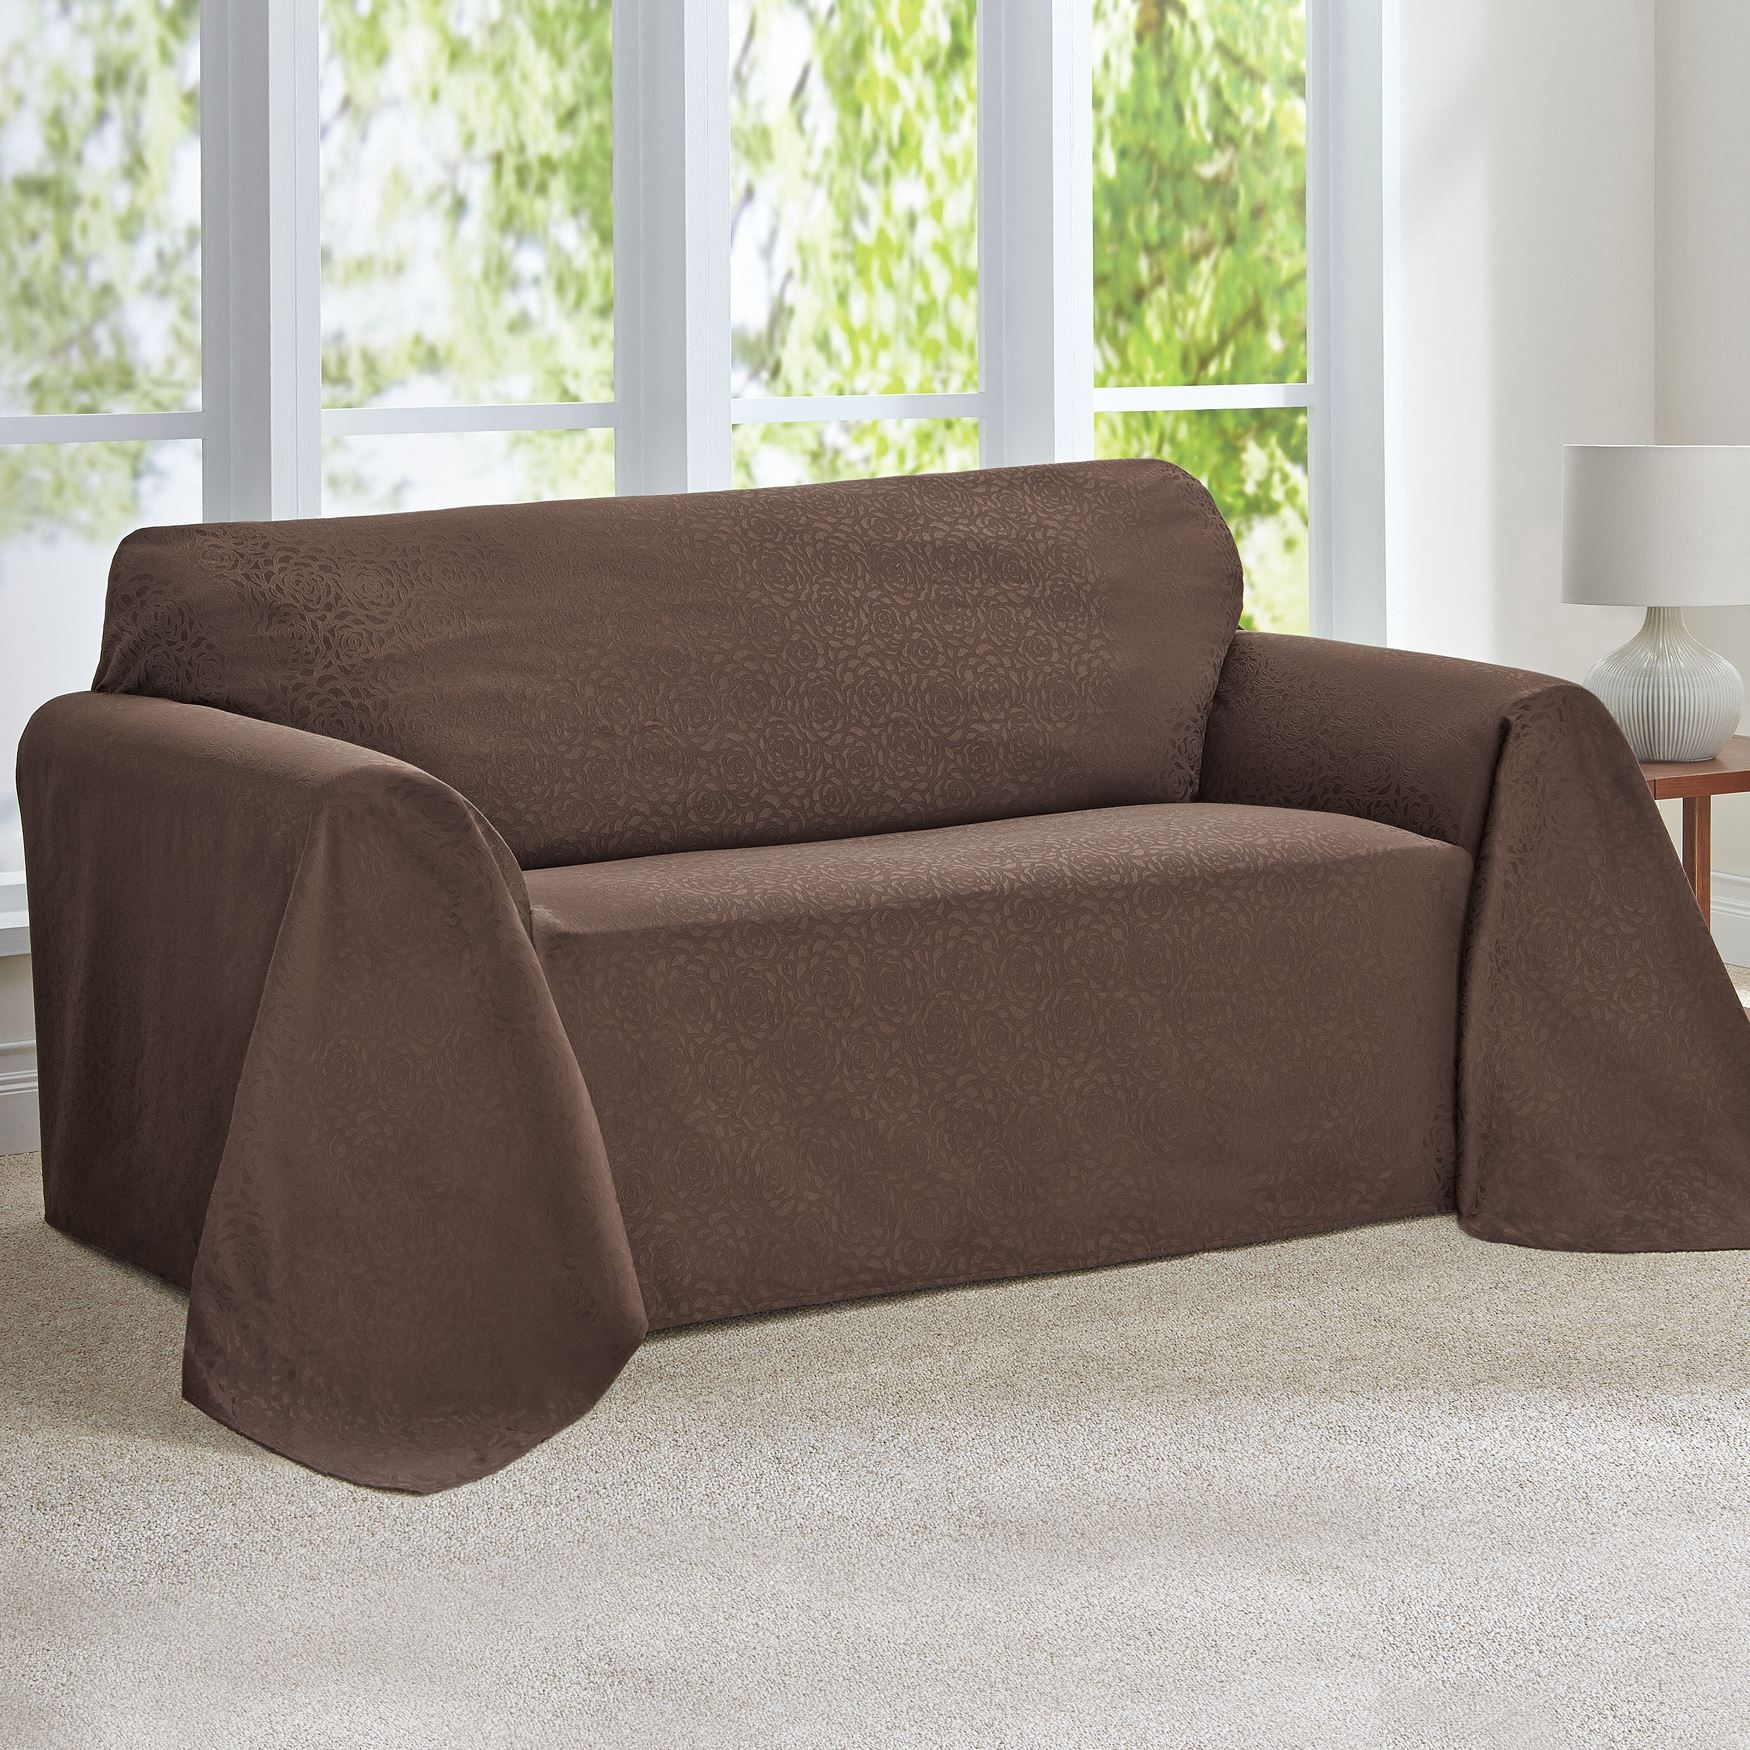 Throw Covers For Sofas And Chairs Ftempo Inspiration With Regard To Covers For Sofas And Chairs (View 8 of 15)